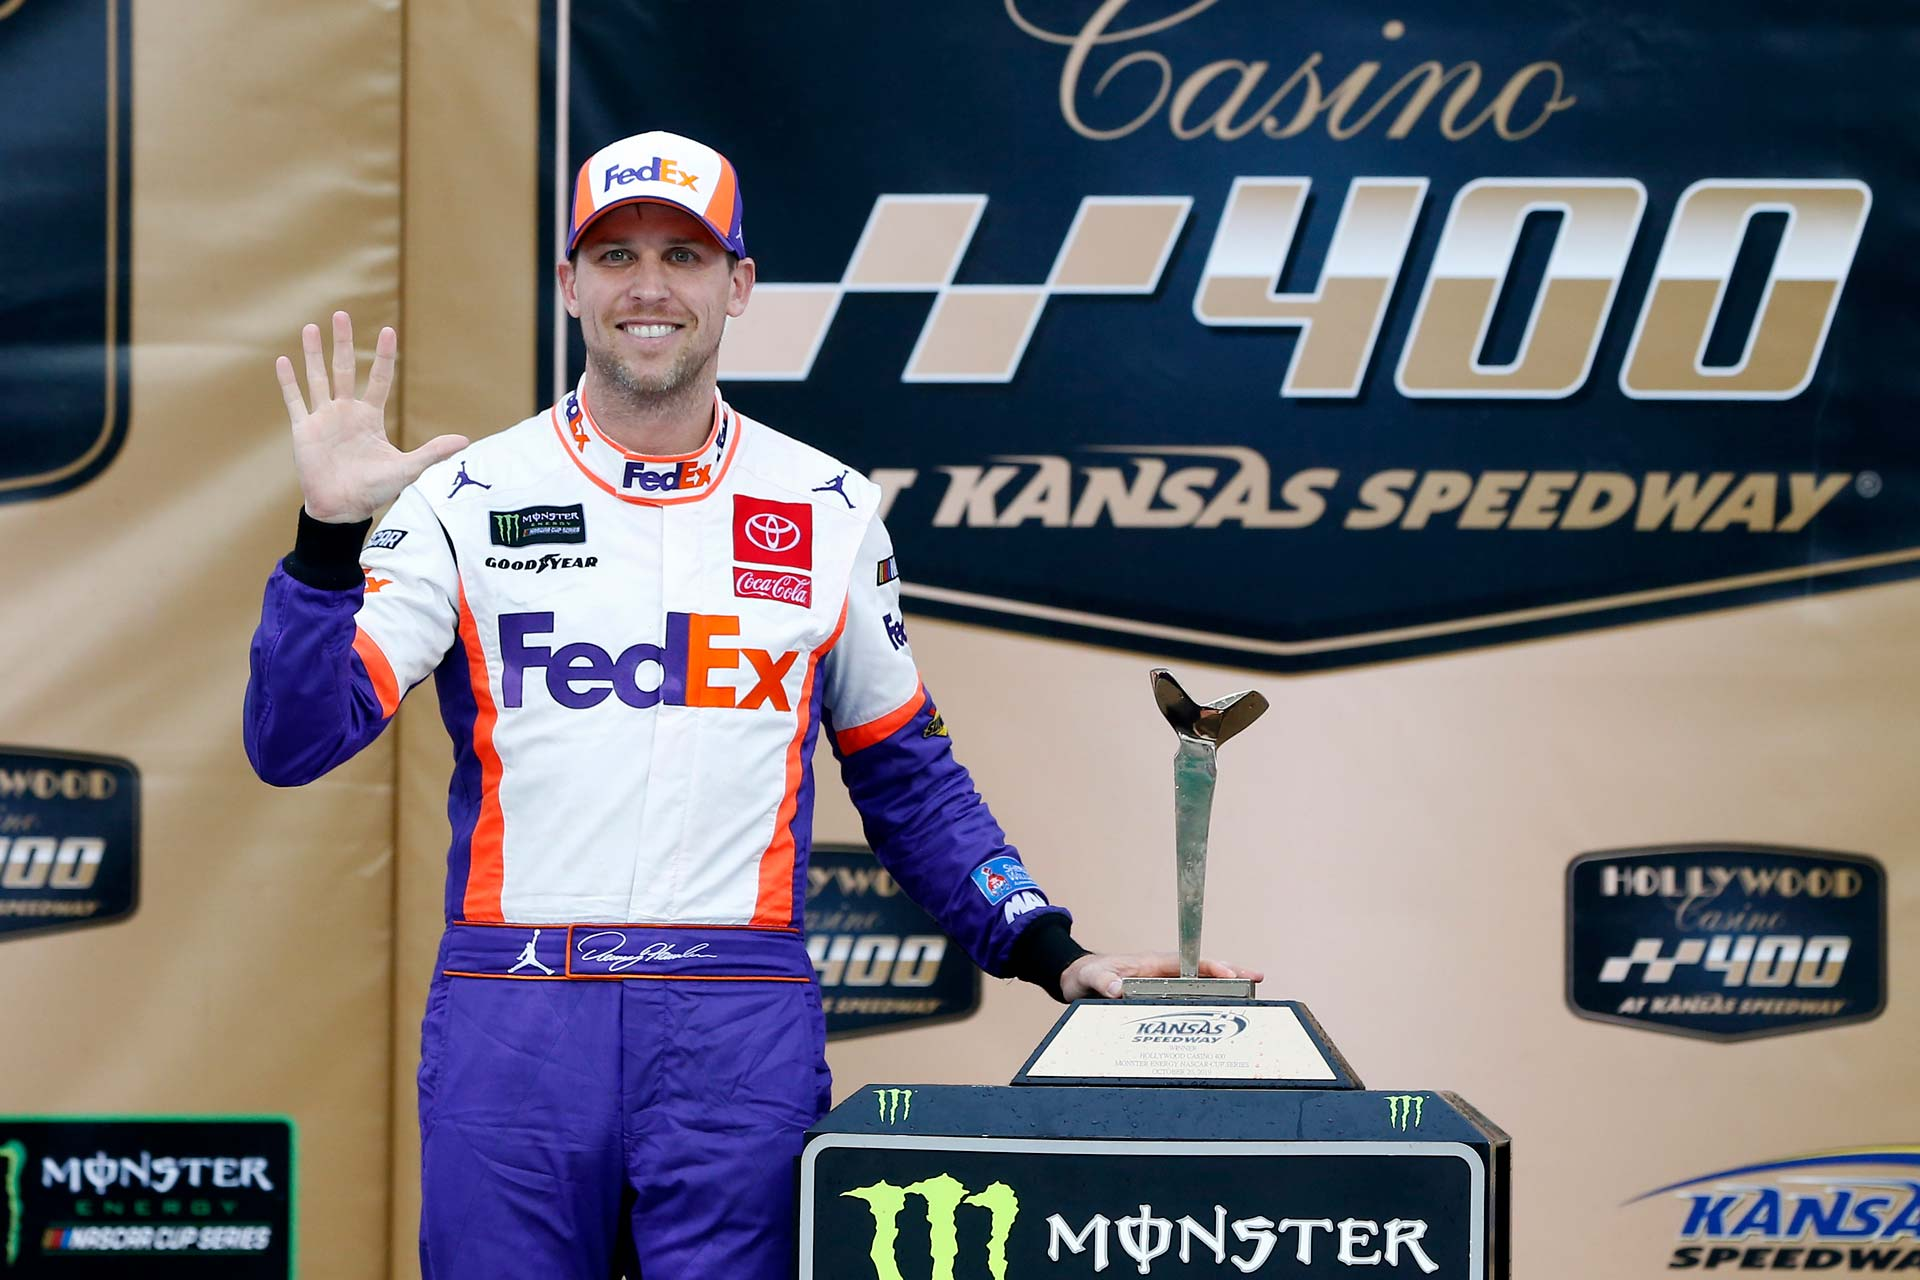 Hamlin Hangs on to Win Hollywood Casino 400 in Kansas